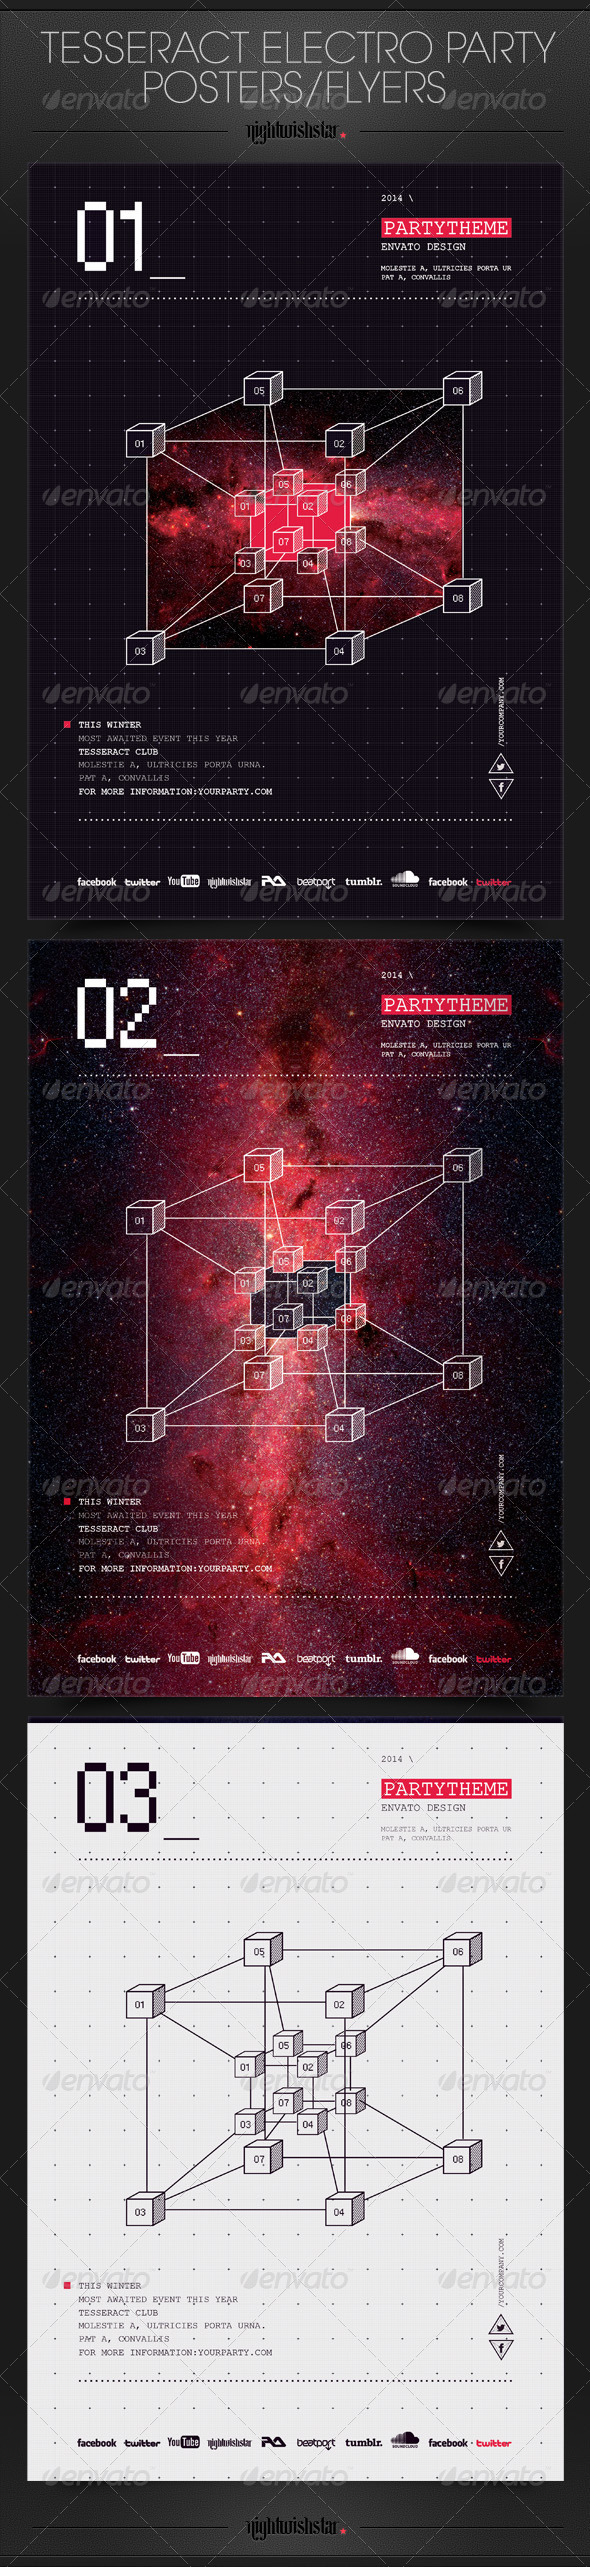 GraphicRiver Tesseract Electro Party Posters Flyers 6547743